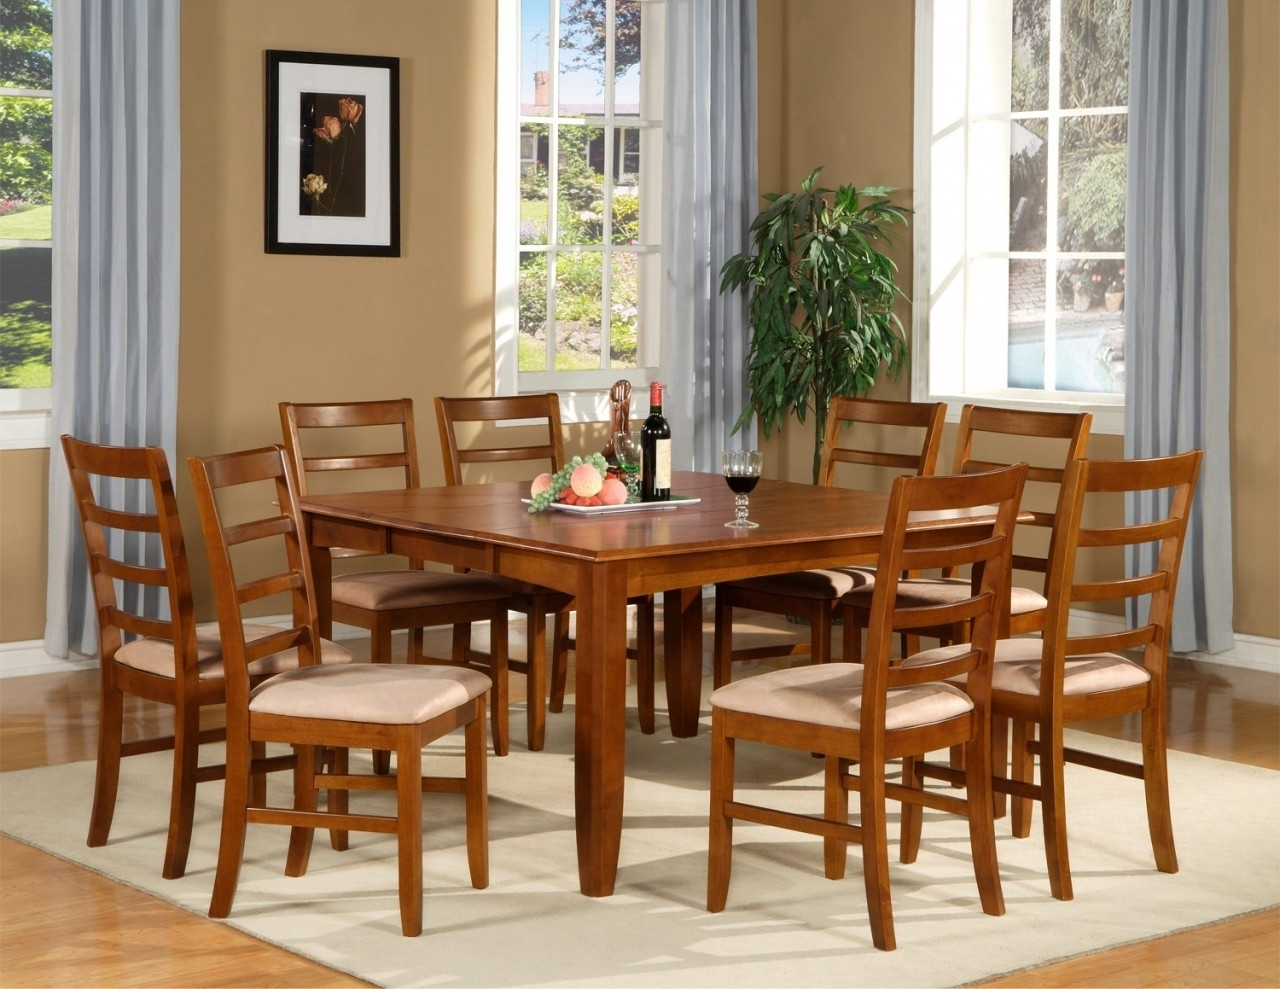 Square Brown Wood Dining Table With Four Legs Addedeight Brown Inside Newest Dining Tables For Eight (View 21 of 25)